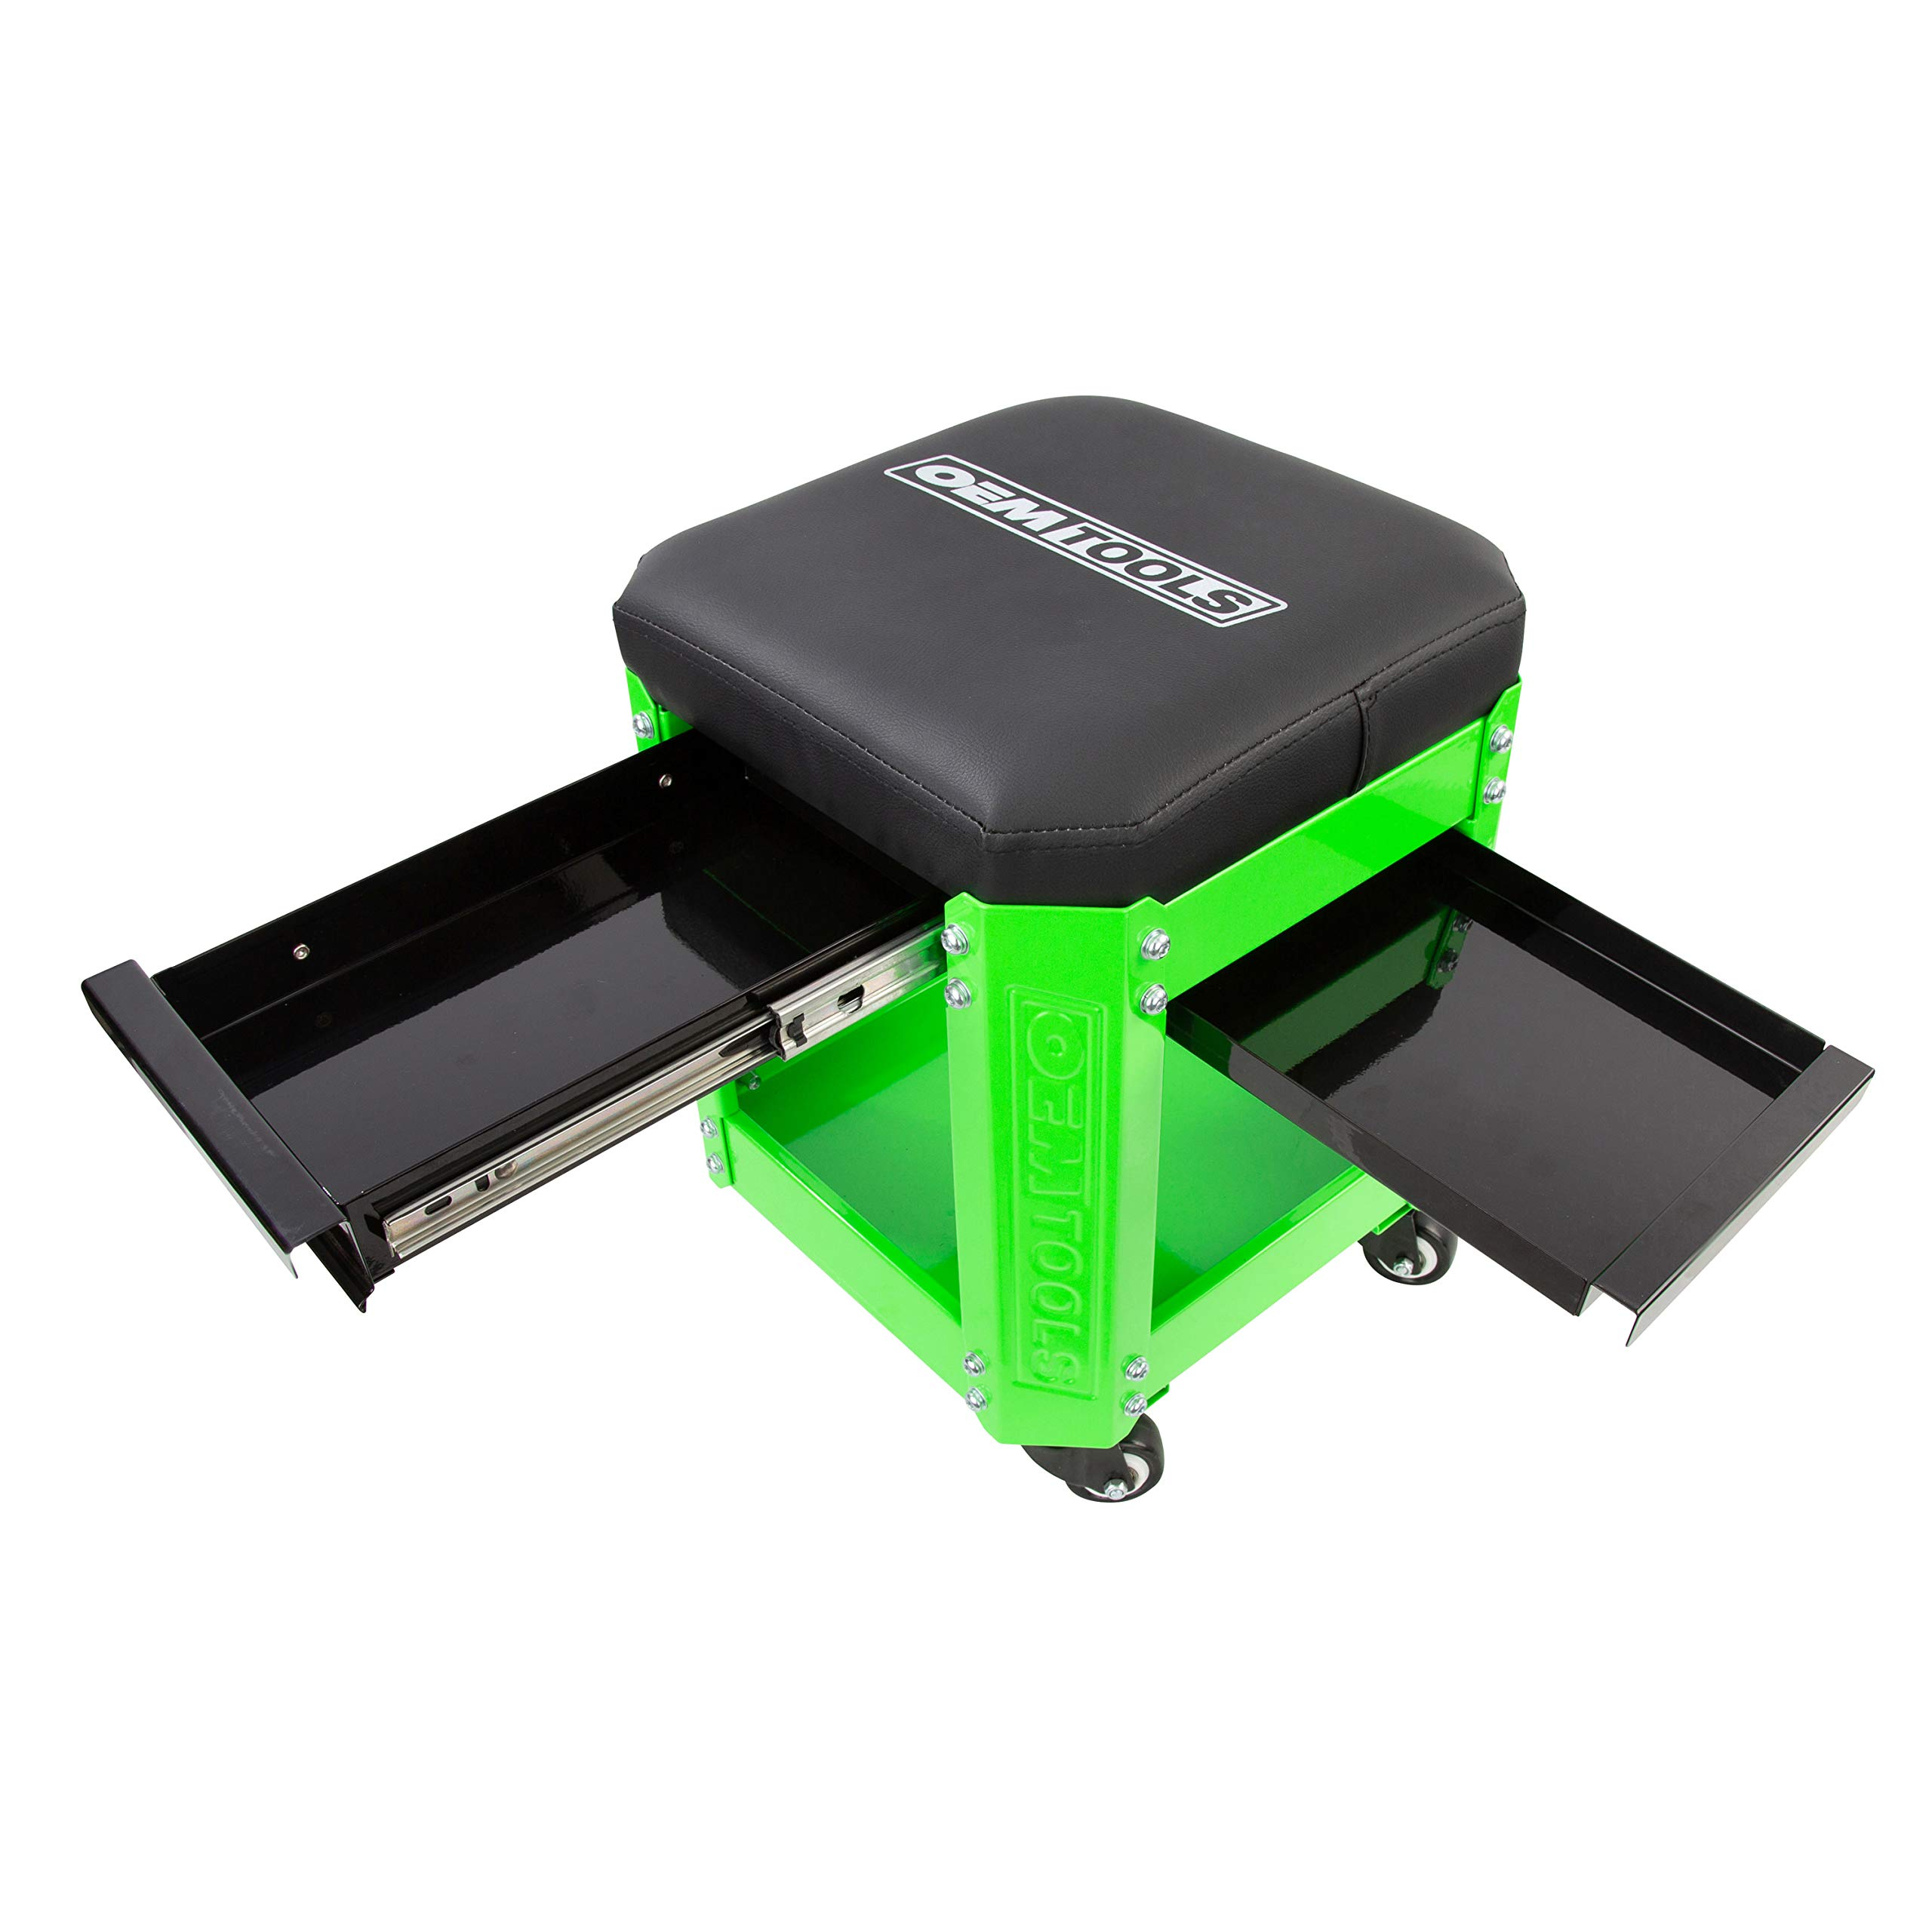 OEMTOOL 24993 Green Rolling Workshop Creeper Seat with 2 Tool Storage Drawers Under Seat Storage Can Holders by OEMTOOLS (Image #2)